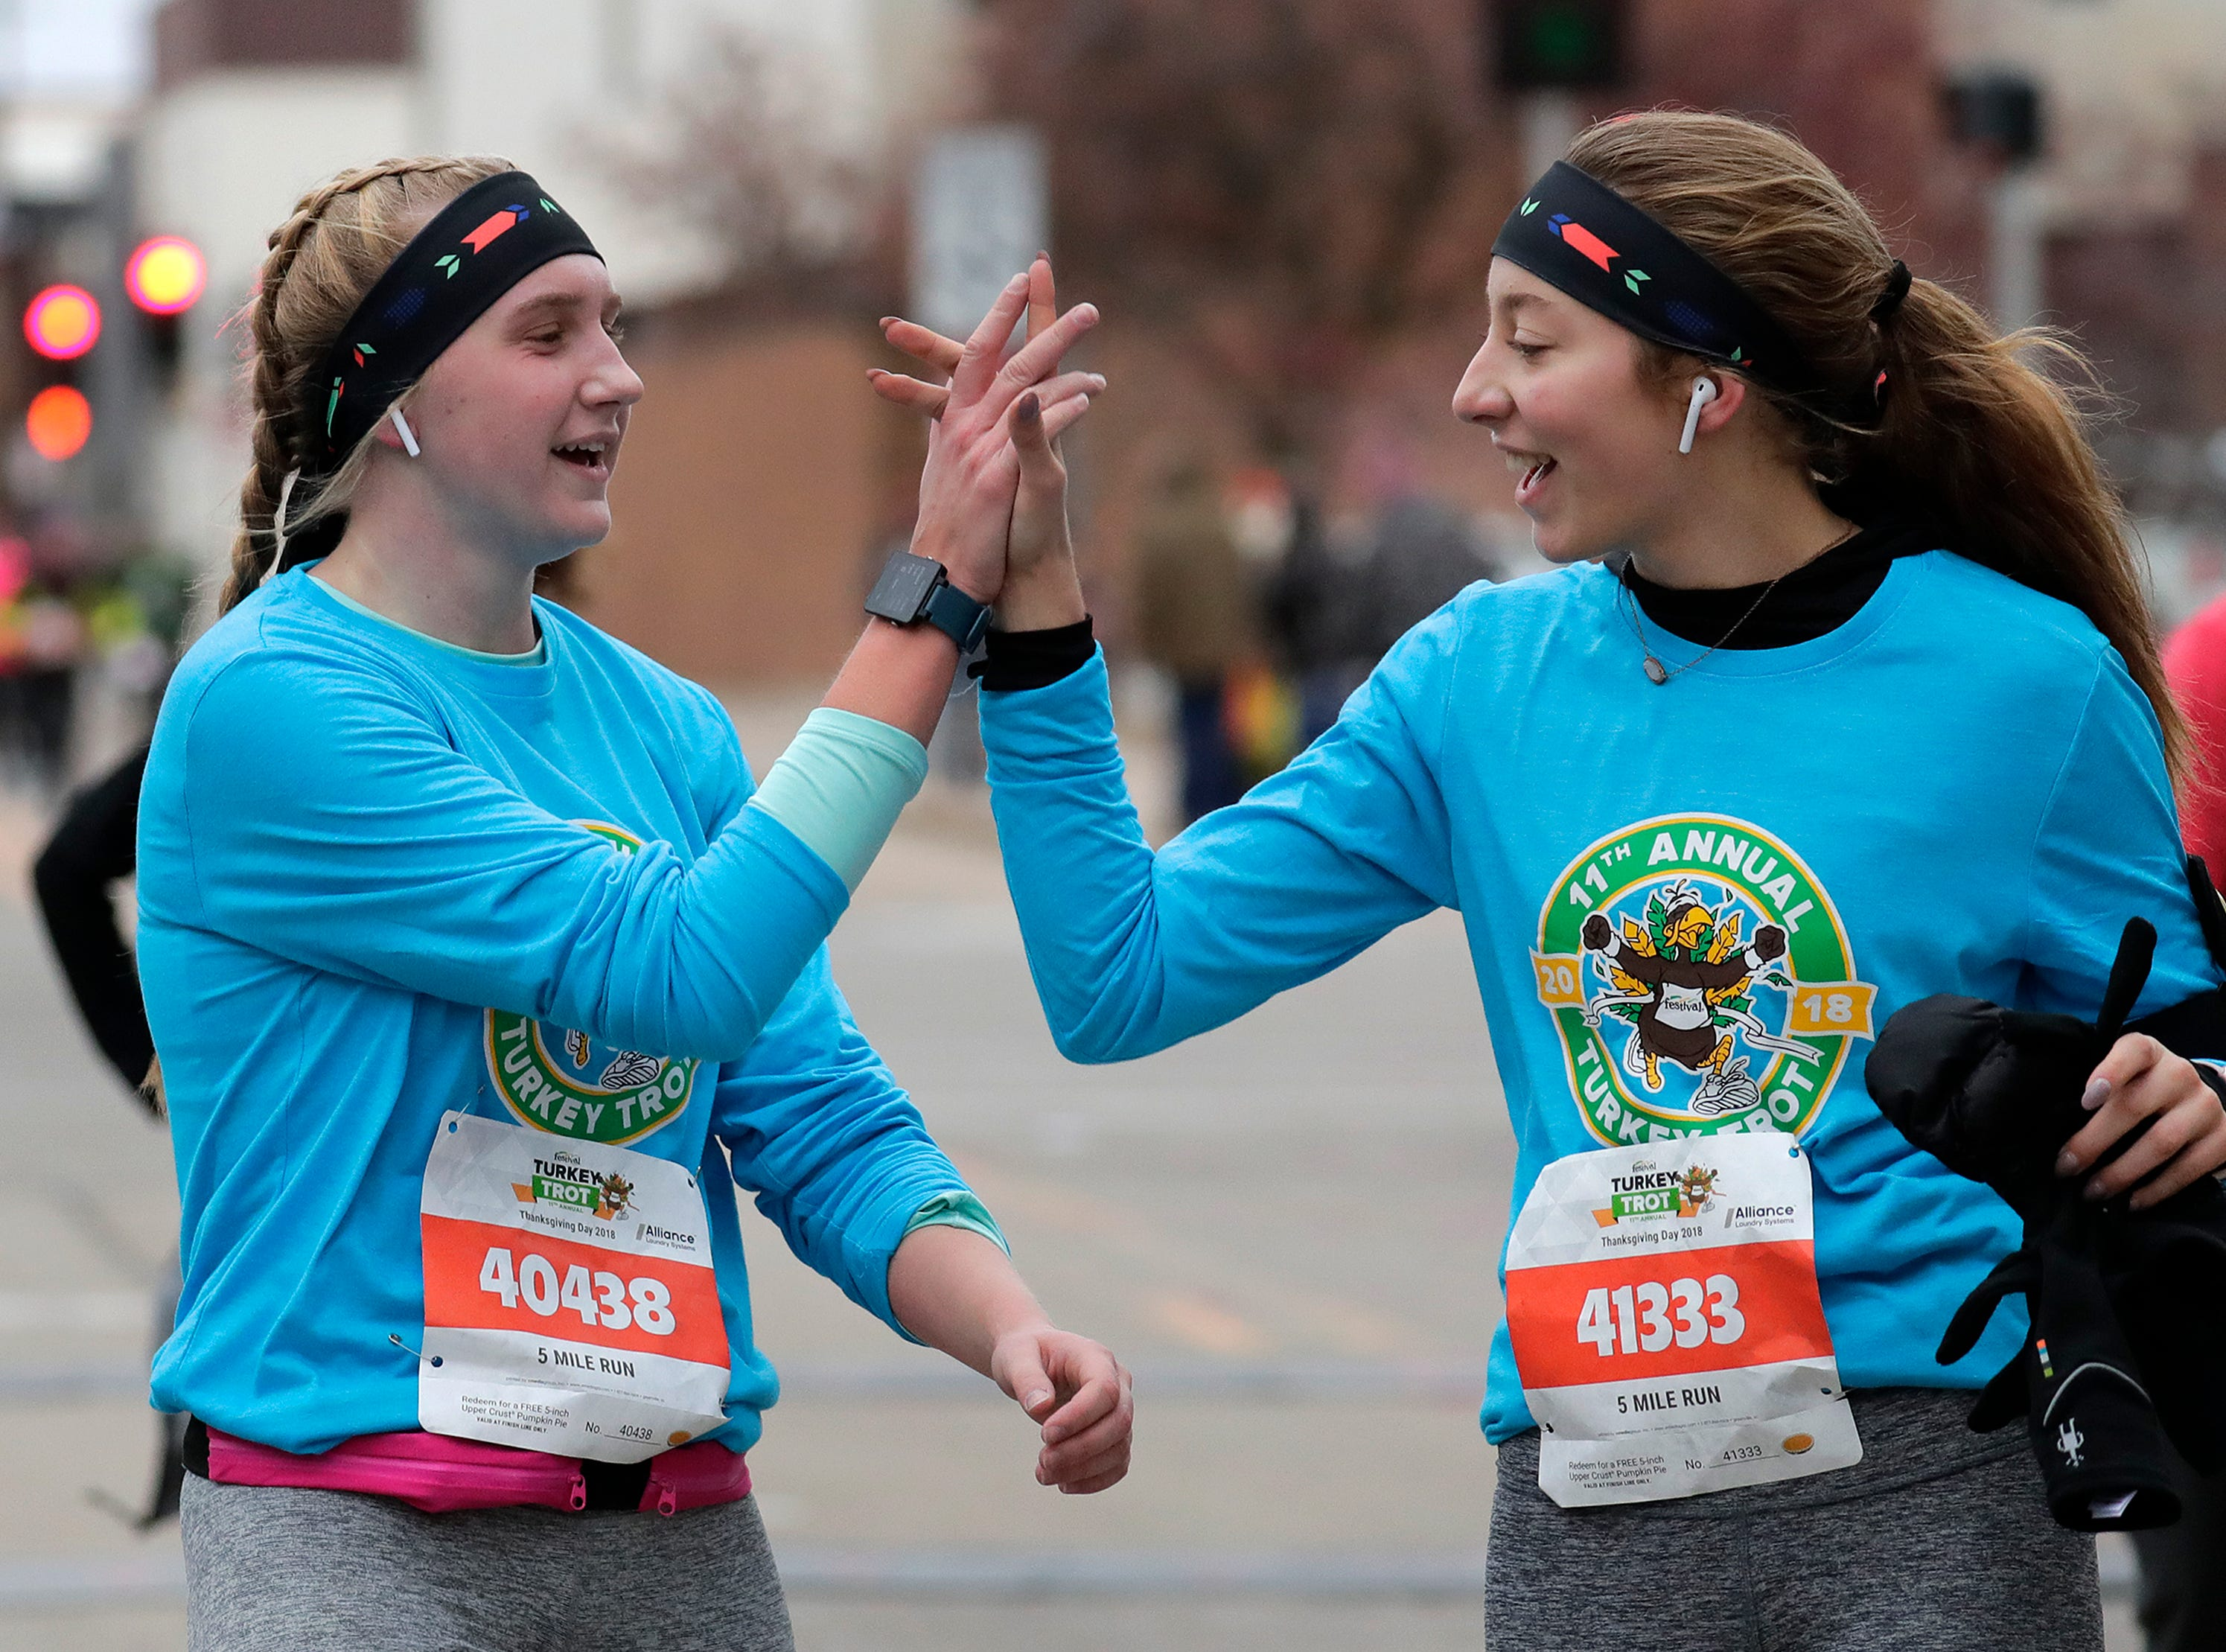 Natalie Dresang, left, and Sarah Messer, both of Kimberly, high-five as they cross the finish line during the 11th Annual Festival Foods Turkey Trot Thursday, November 22, 2018, in Appleton, Wis. 